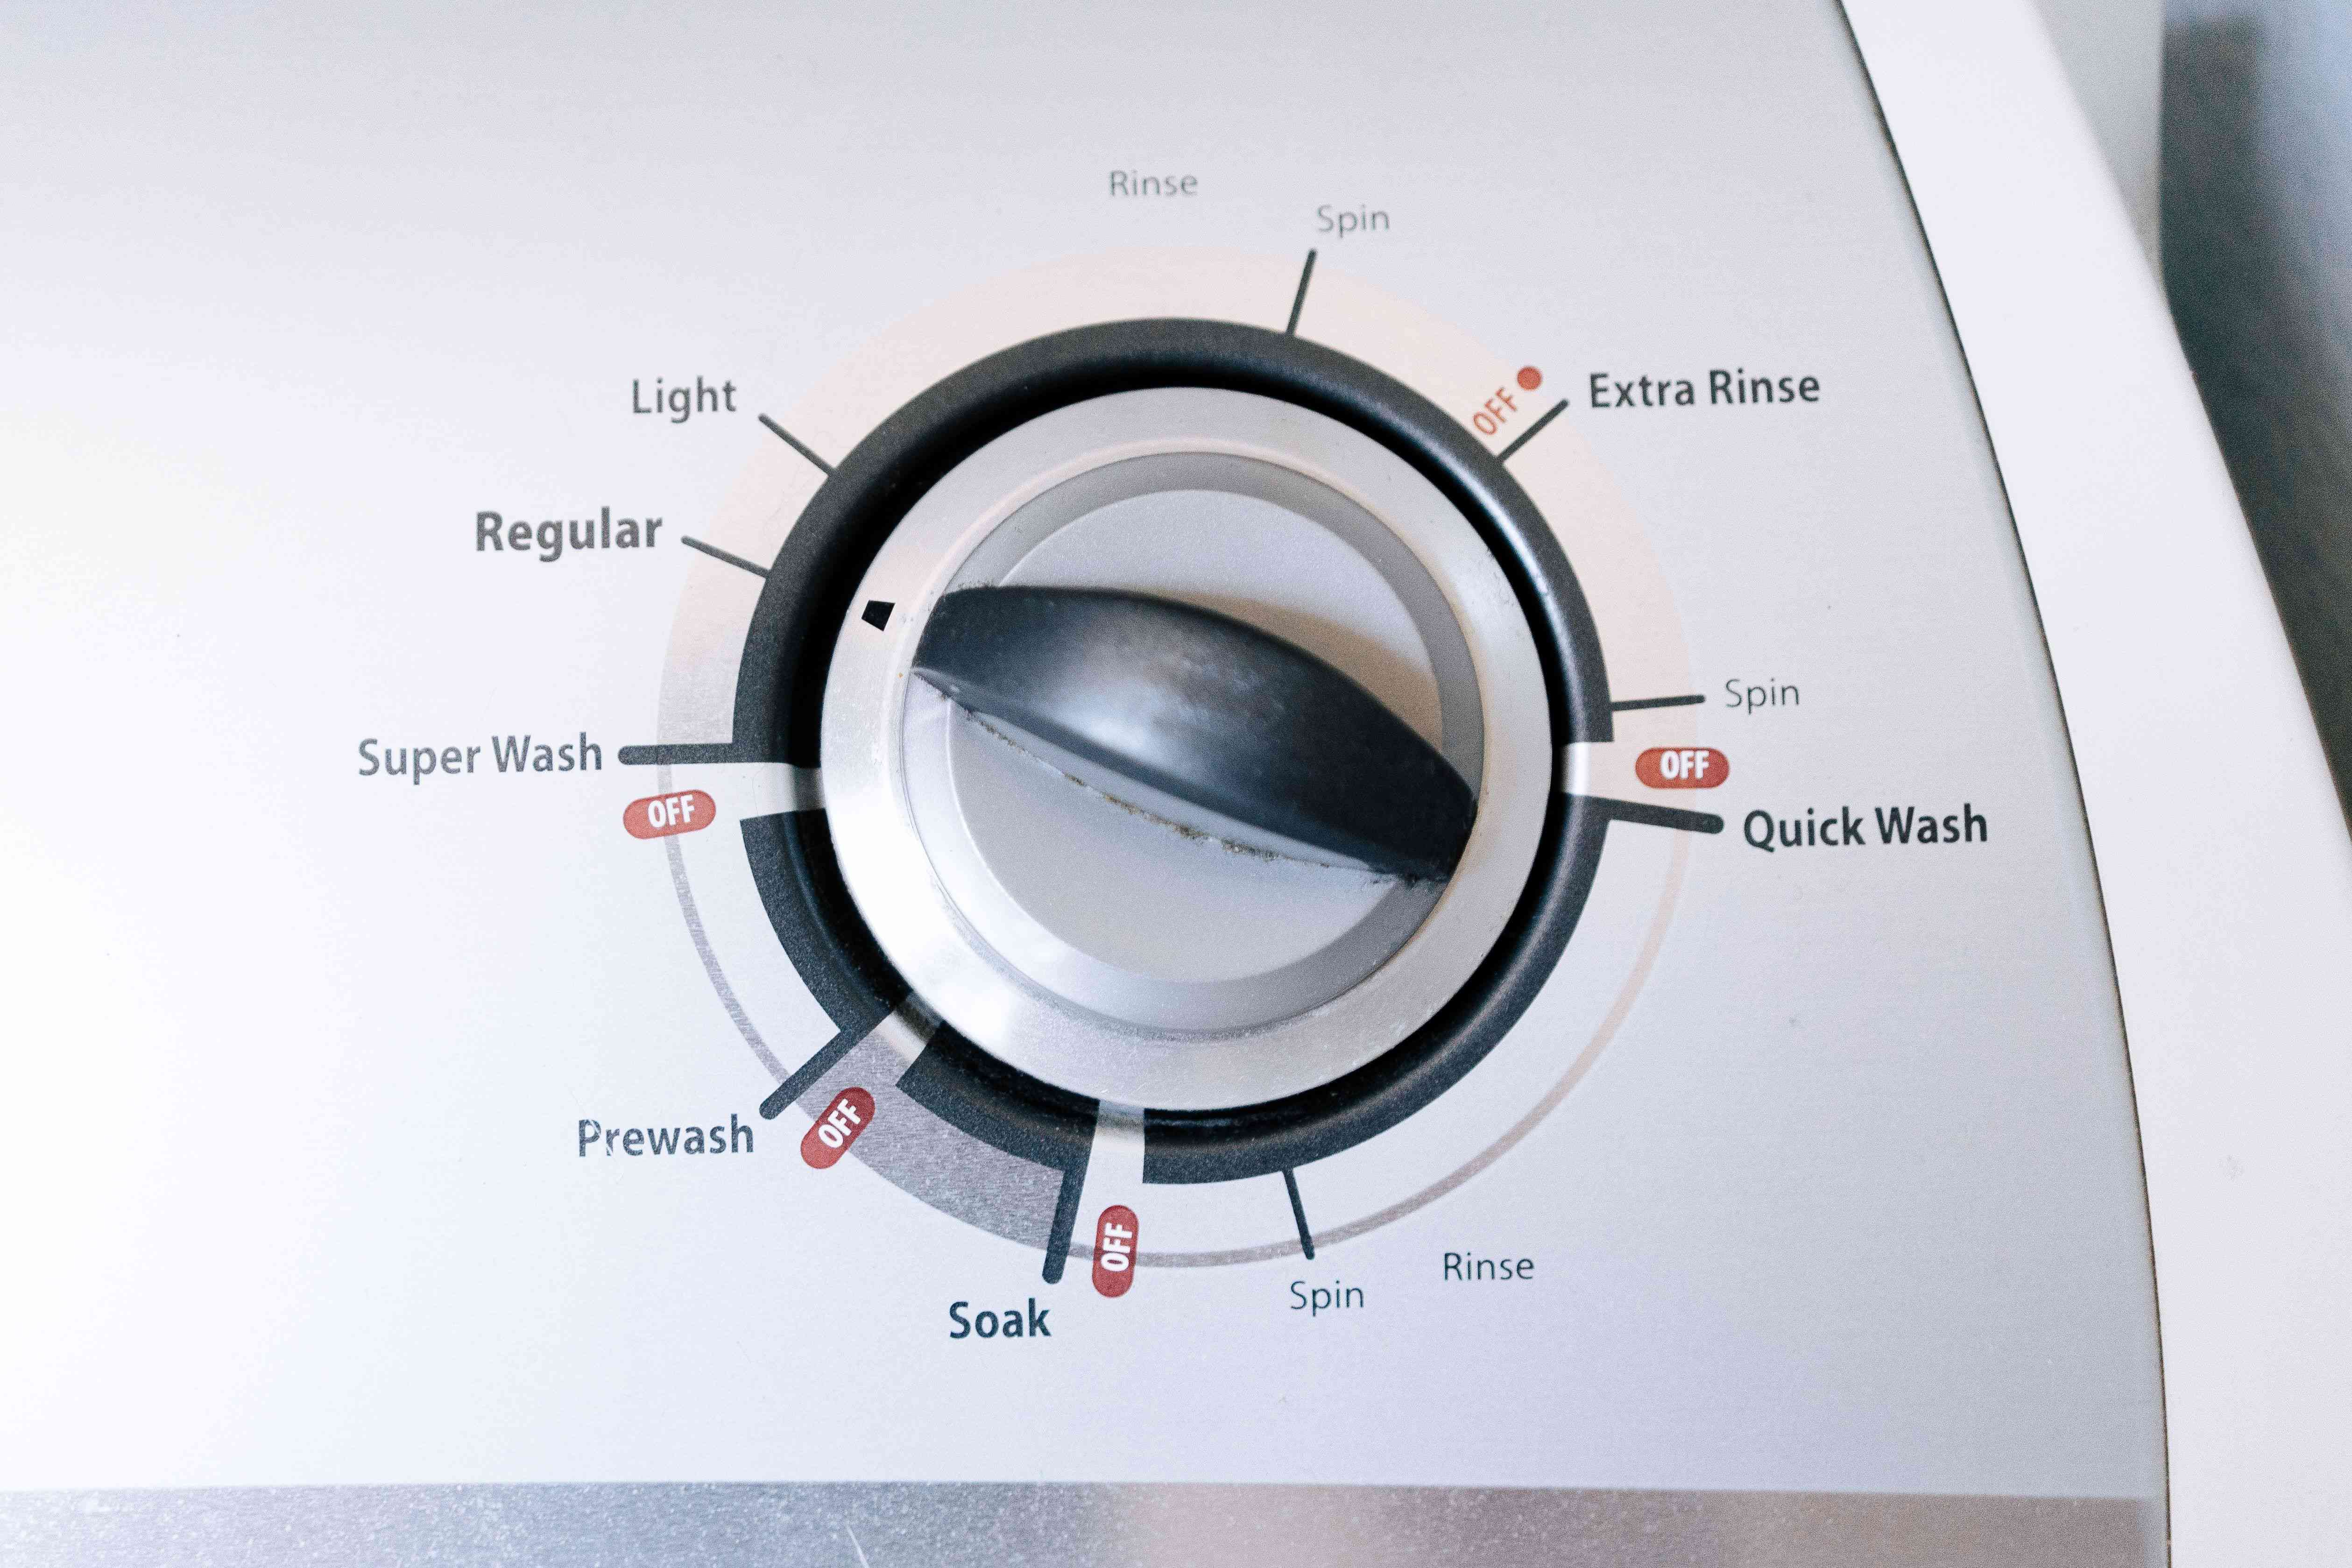 Allowing the washer to complete a full cycle